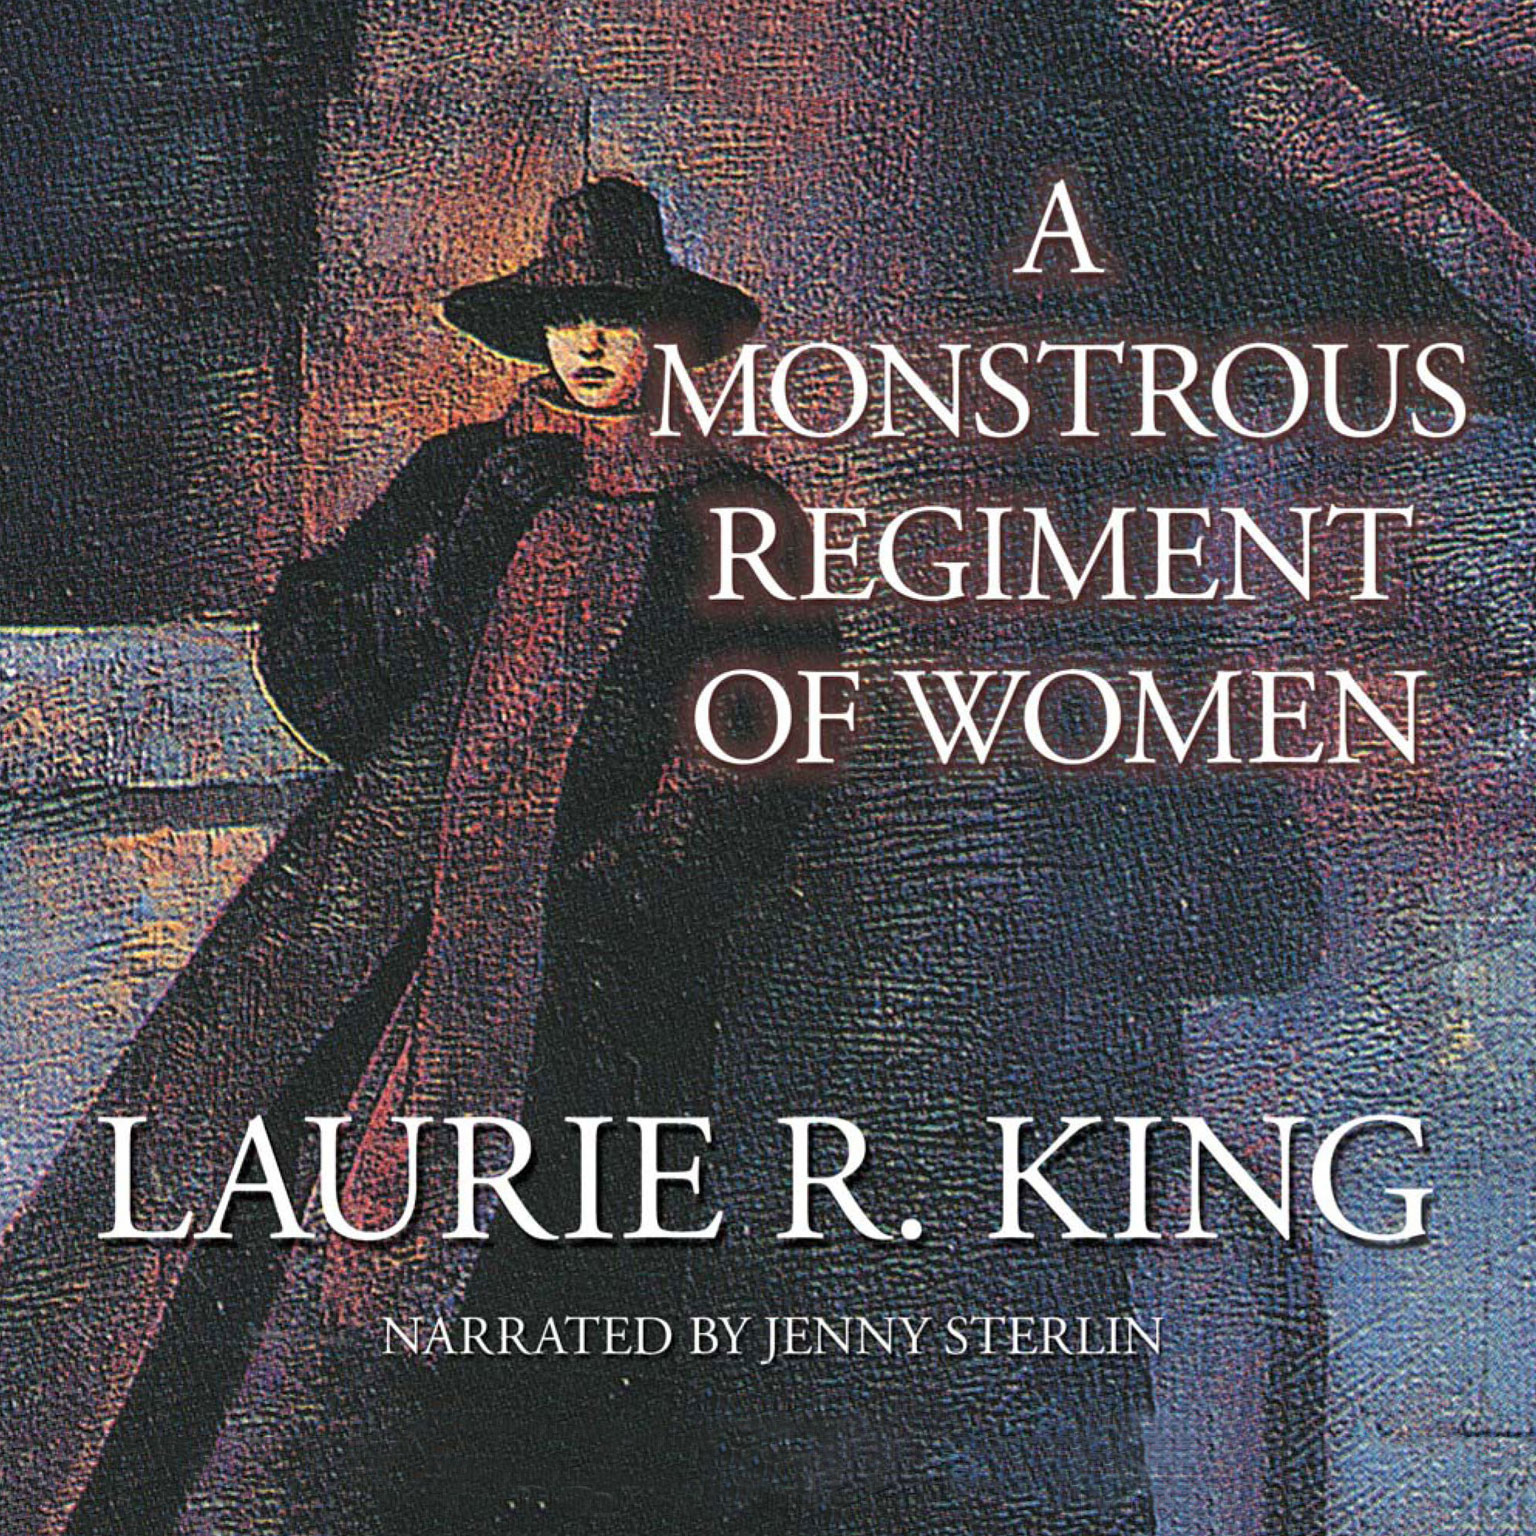 Printable A Monstrous Regiment of Women Audiobook Cover Art